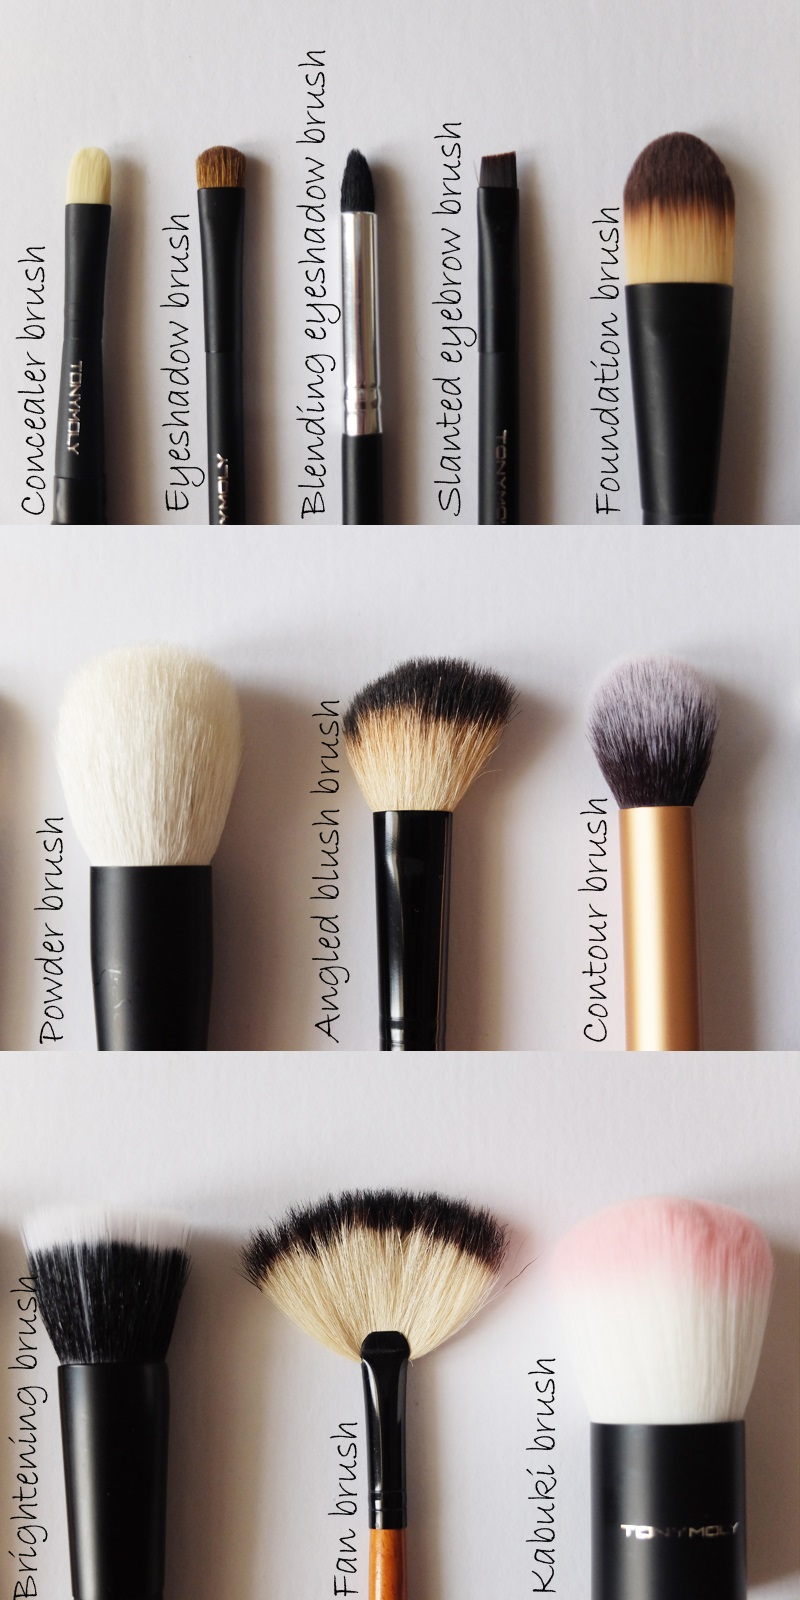 List Of All Makeup Brushes And Their Uses